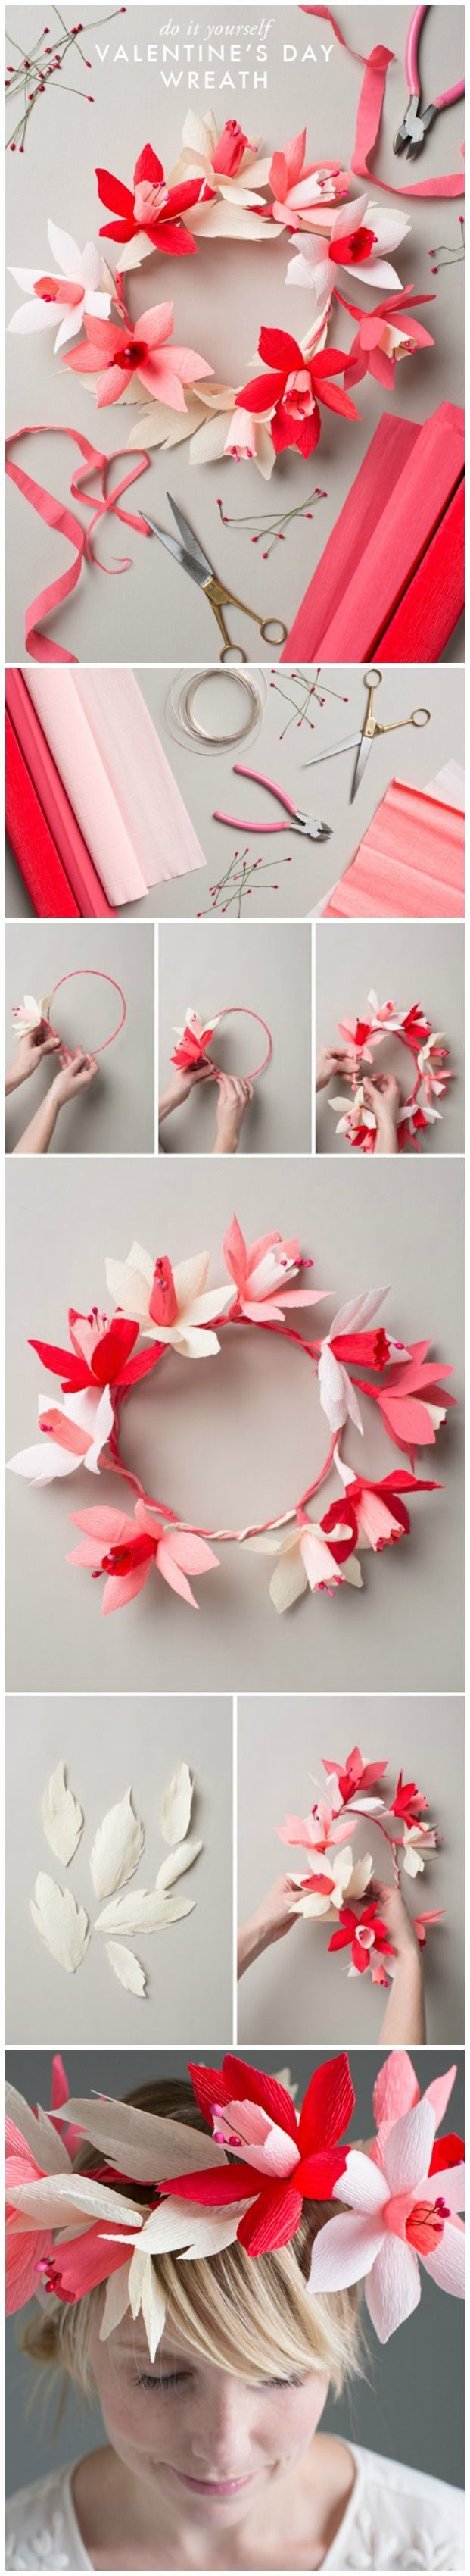 Valentine's paper flower wreath | DIY Valentines Day Ideas | DIY Fun Tips #valentines day wreath diy paper flowers #valentines day crafts to sell etsy #crochetedflowers